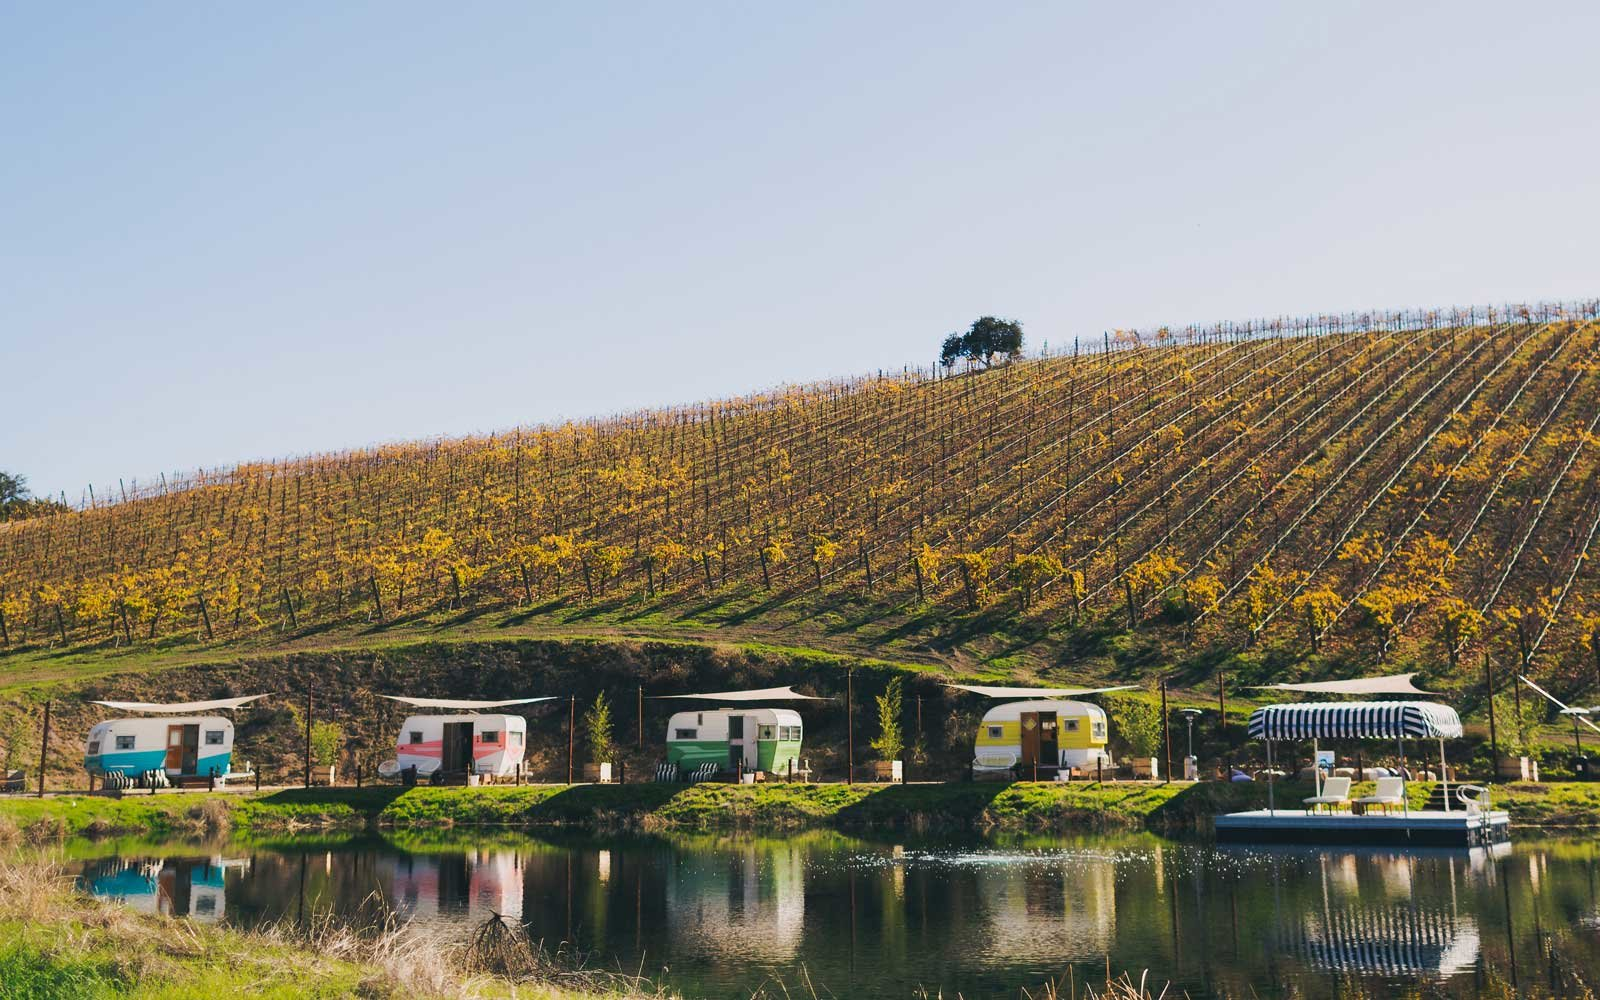 vintage campers on the water at a vineyard